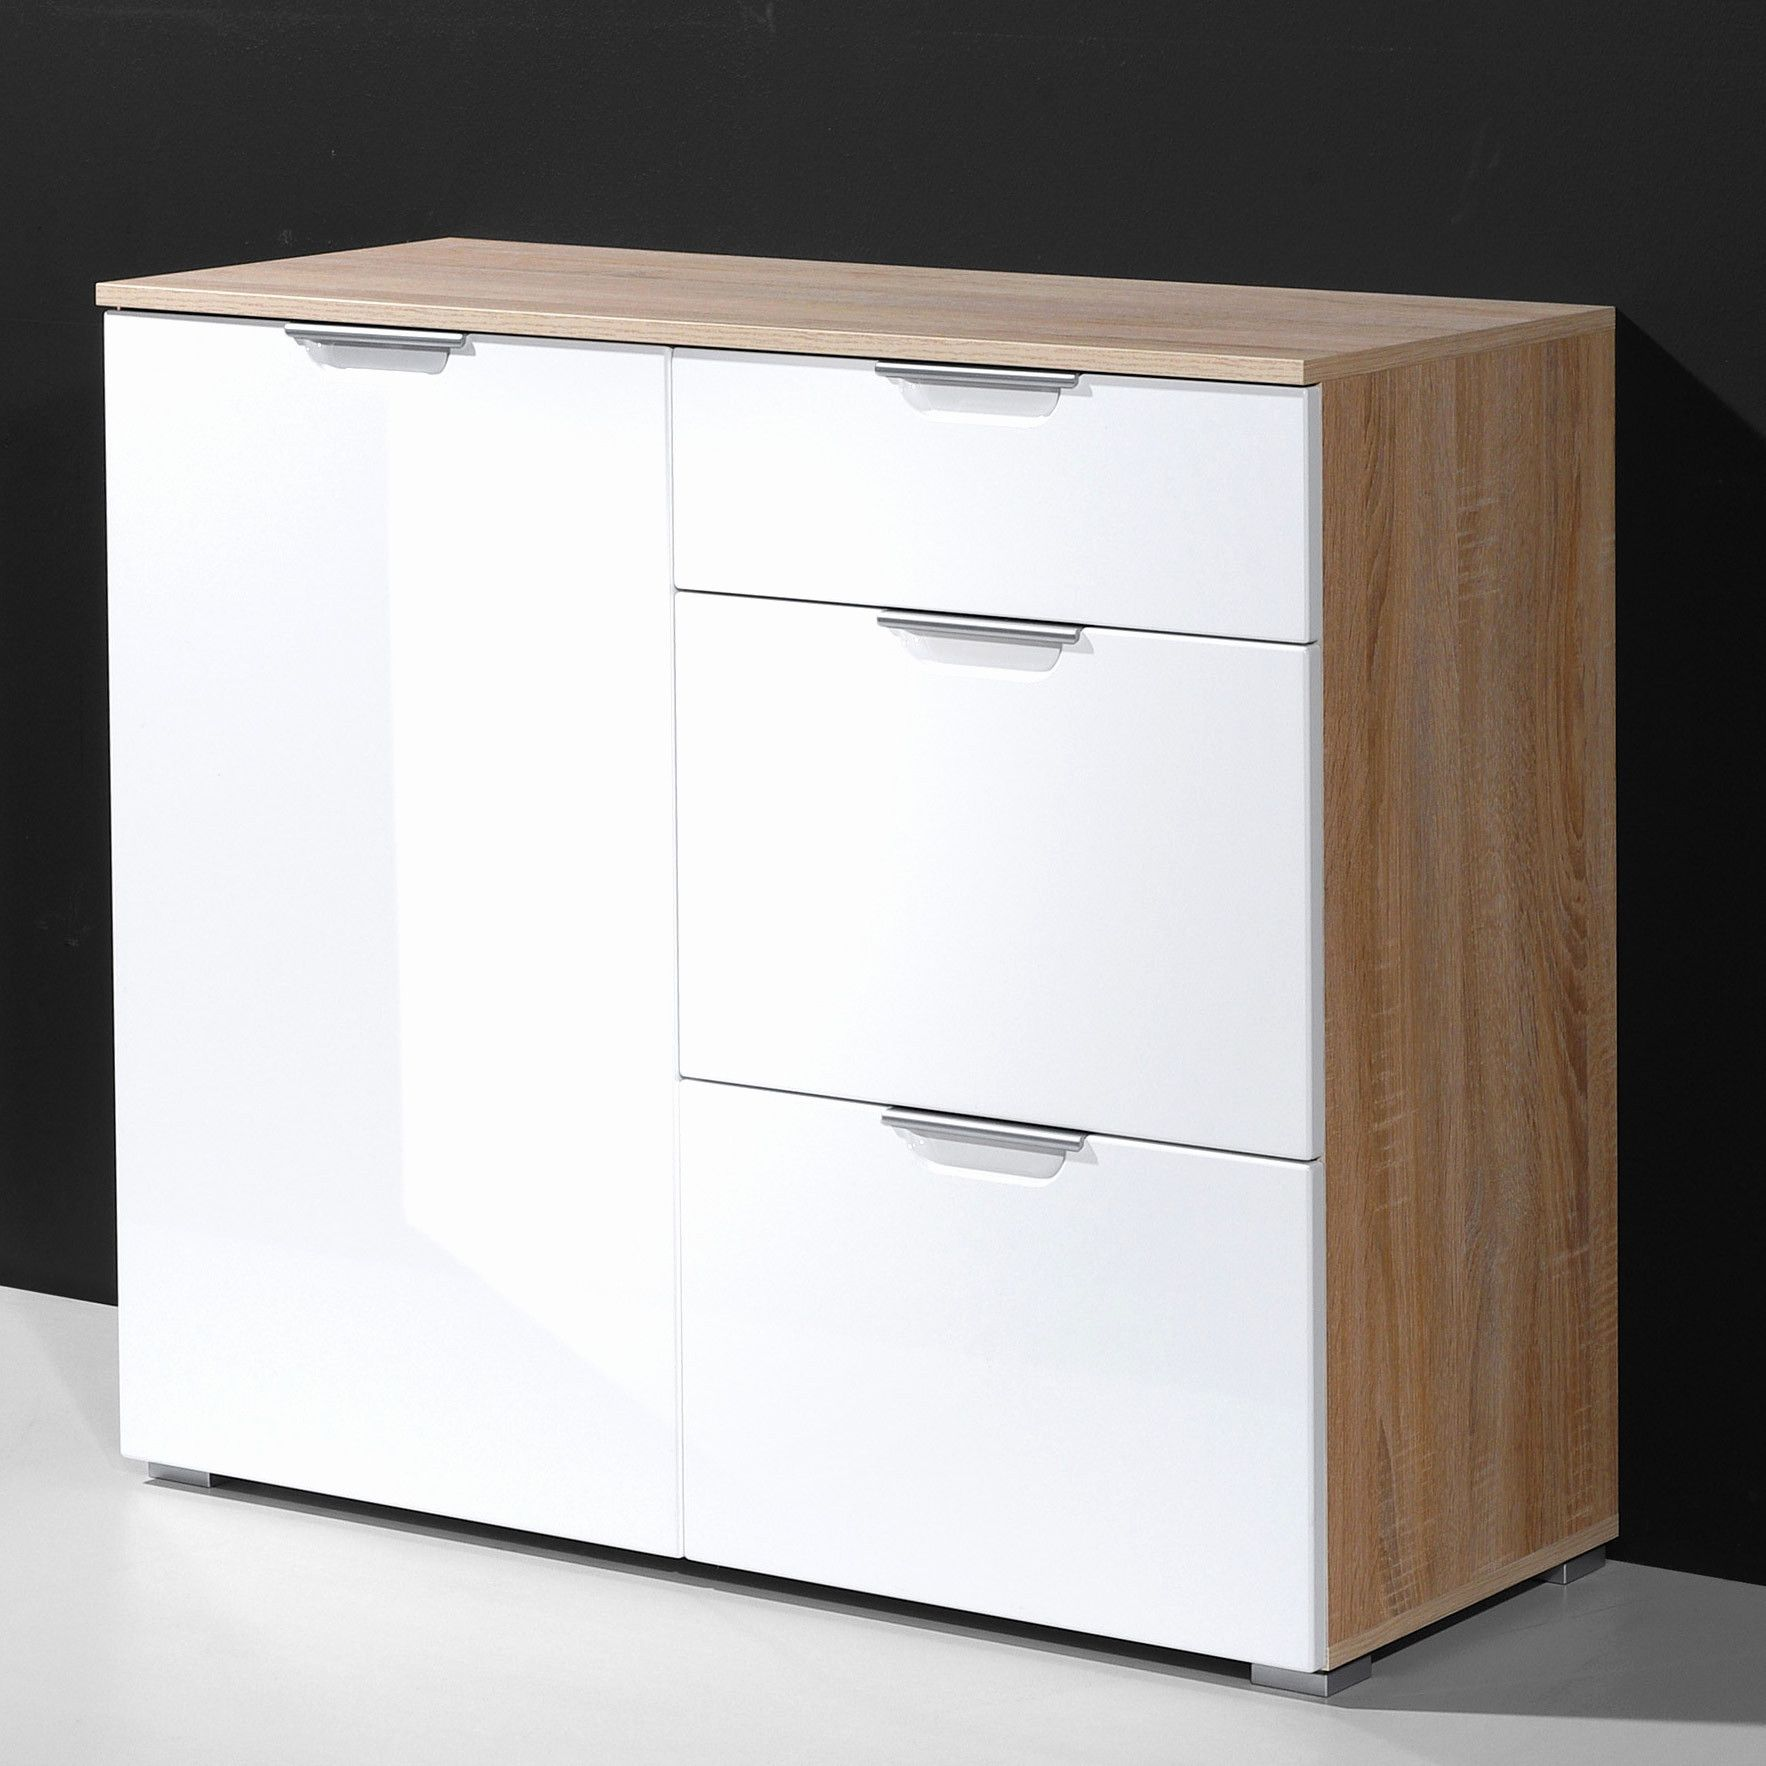 Best Of Ikea Dossiers Suspendus Filing Cabinet Storage Home Decor